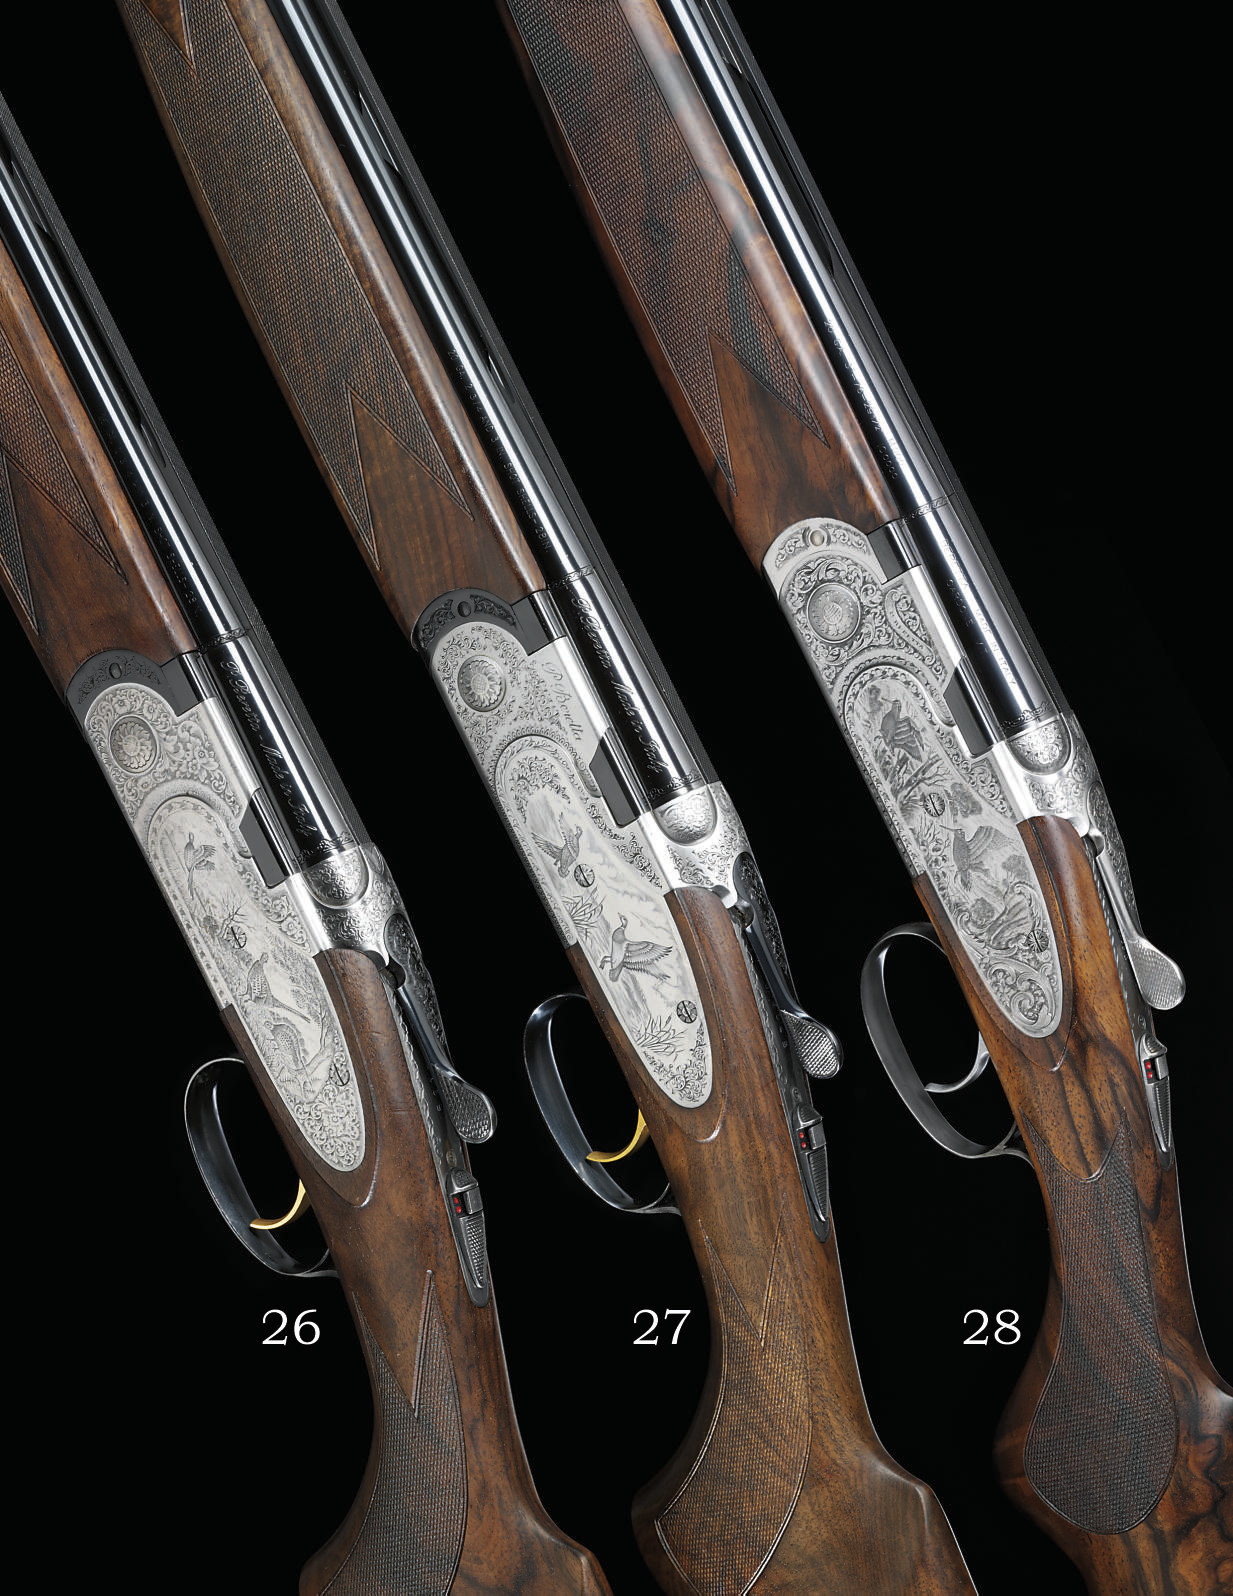 A 20-BORE 'S687 EELL DIAMOND PIGEON' MODEL SINGLE-TRIGGER OVER-AND-UNDER SIDEPLATED BOXLOCK EJECTOR GUN BY BERETTA, NO. M54964B